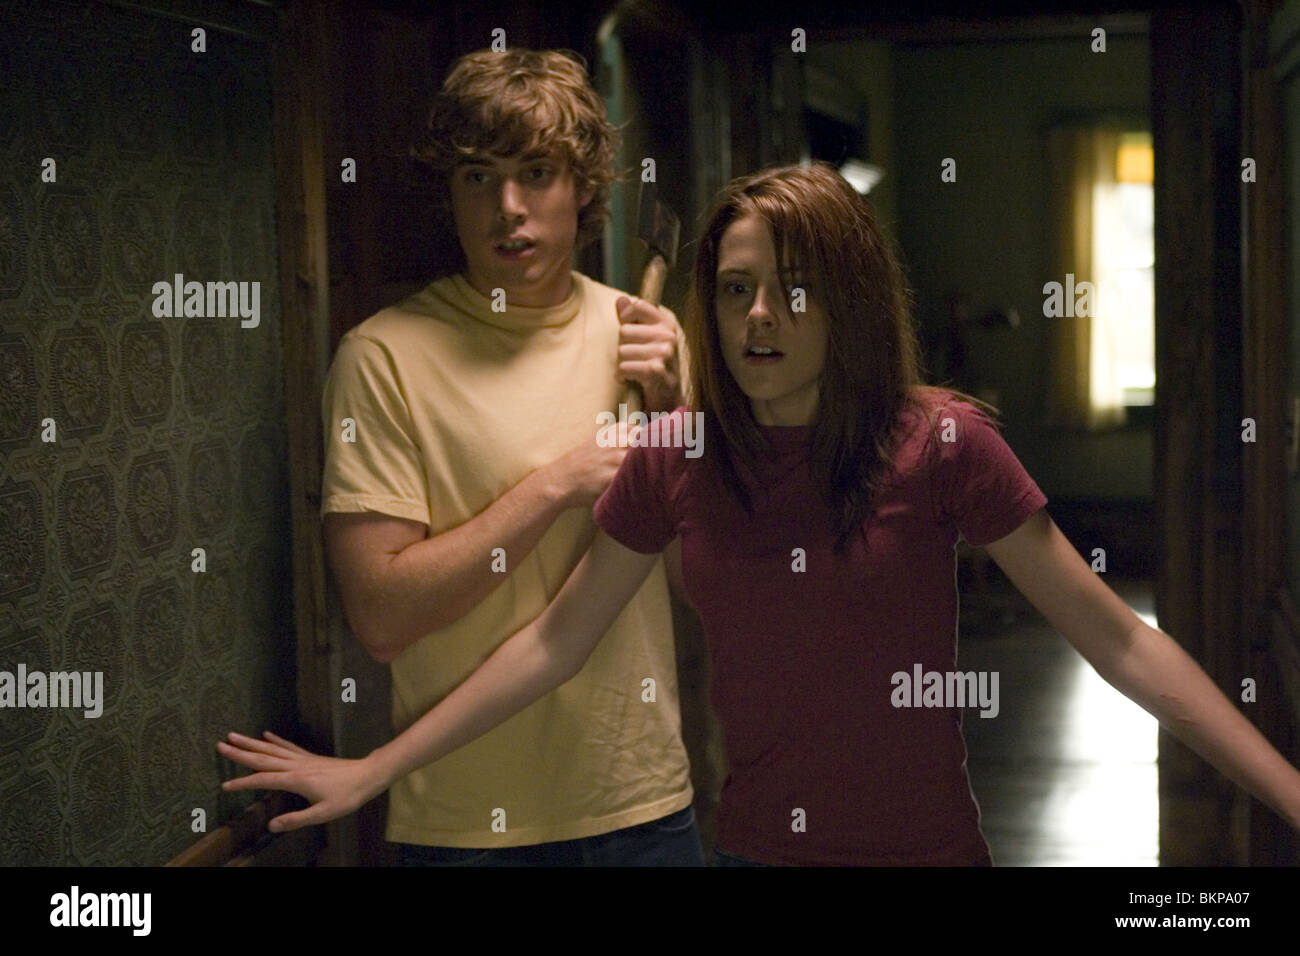 THE MESSENGERS (2007) DUSTIN MILLIGAN, KRISTEN STEWART MESG 001-01 Stock Photo